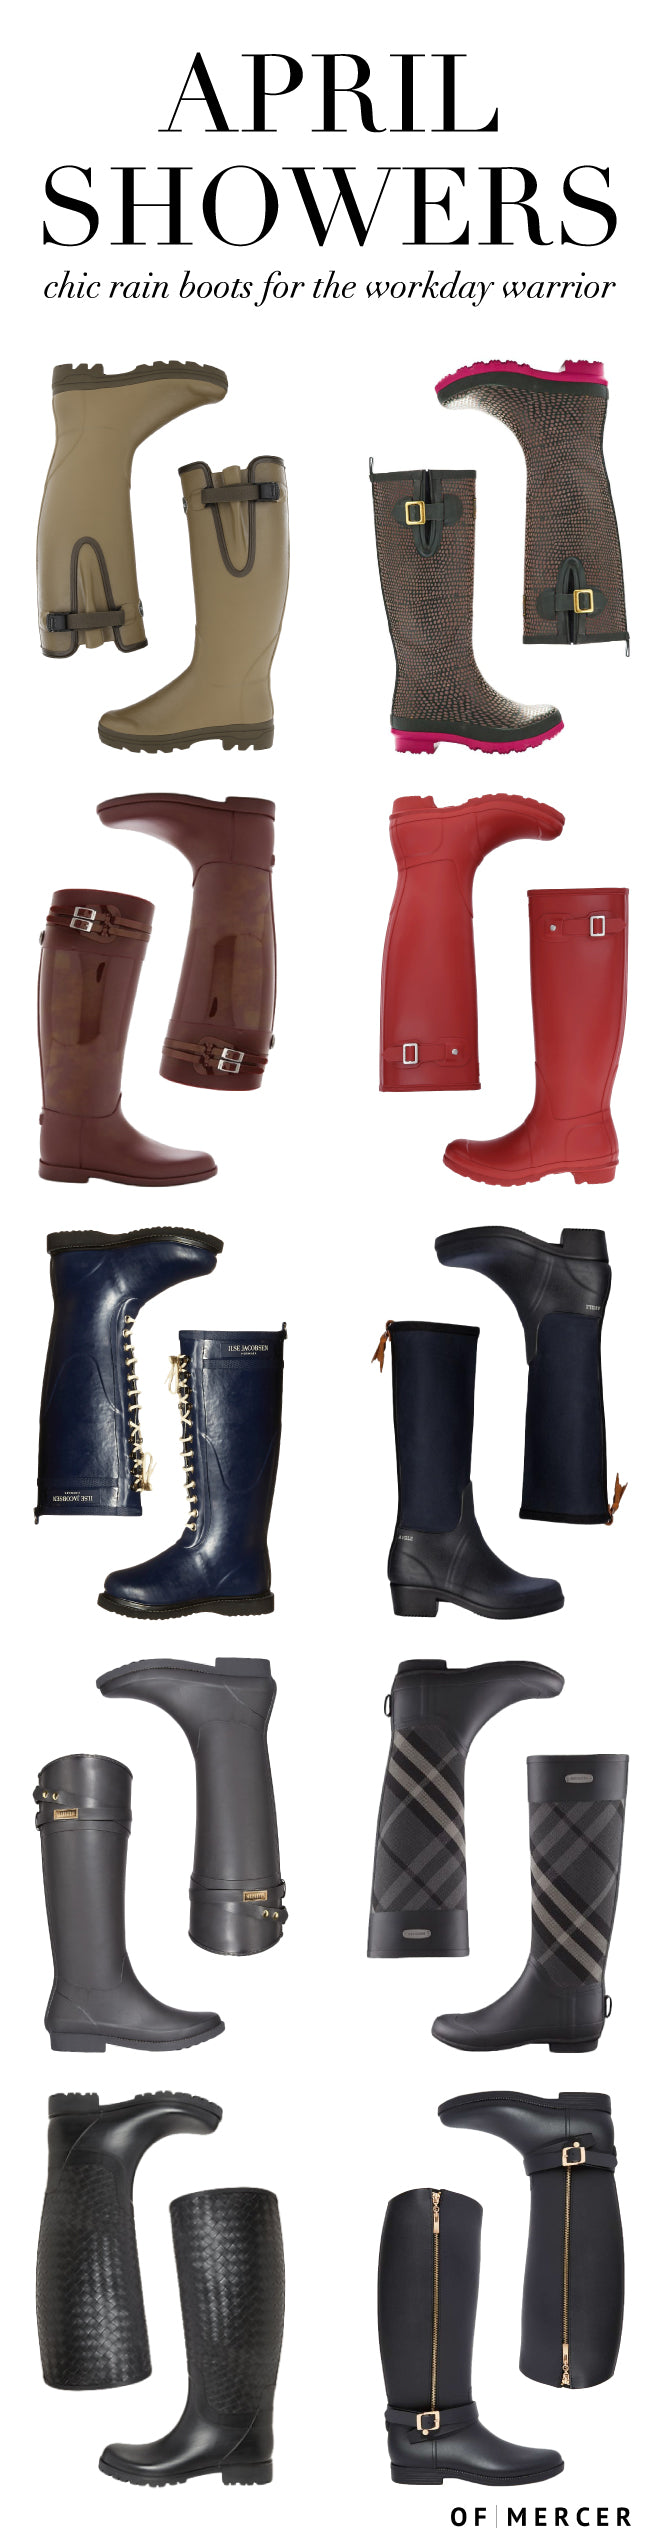 10 Chic Work Rain Boots - Of Mercer Blog Main Image